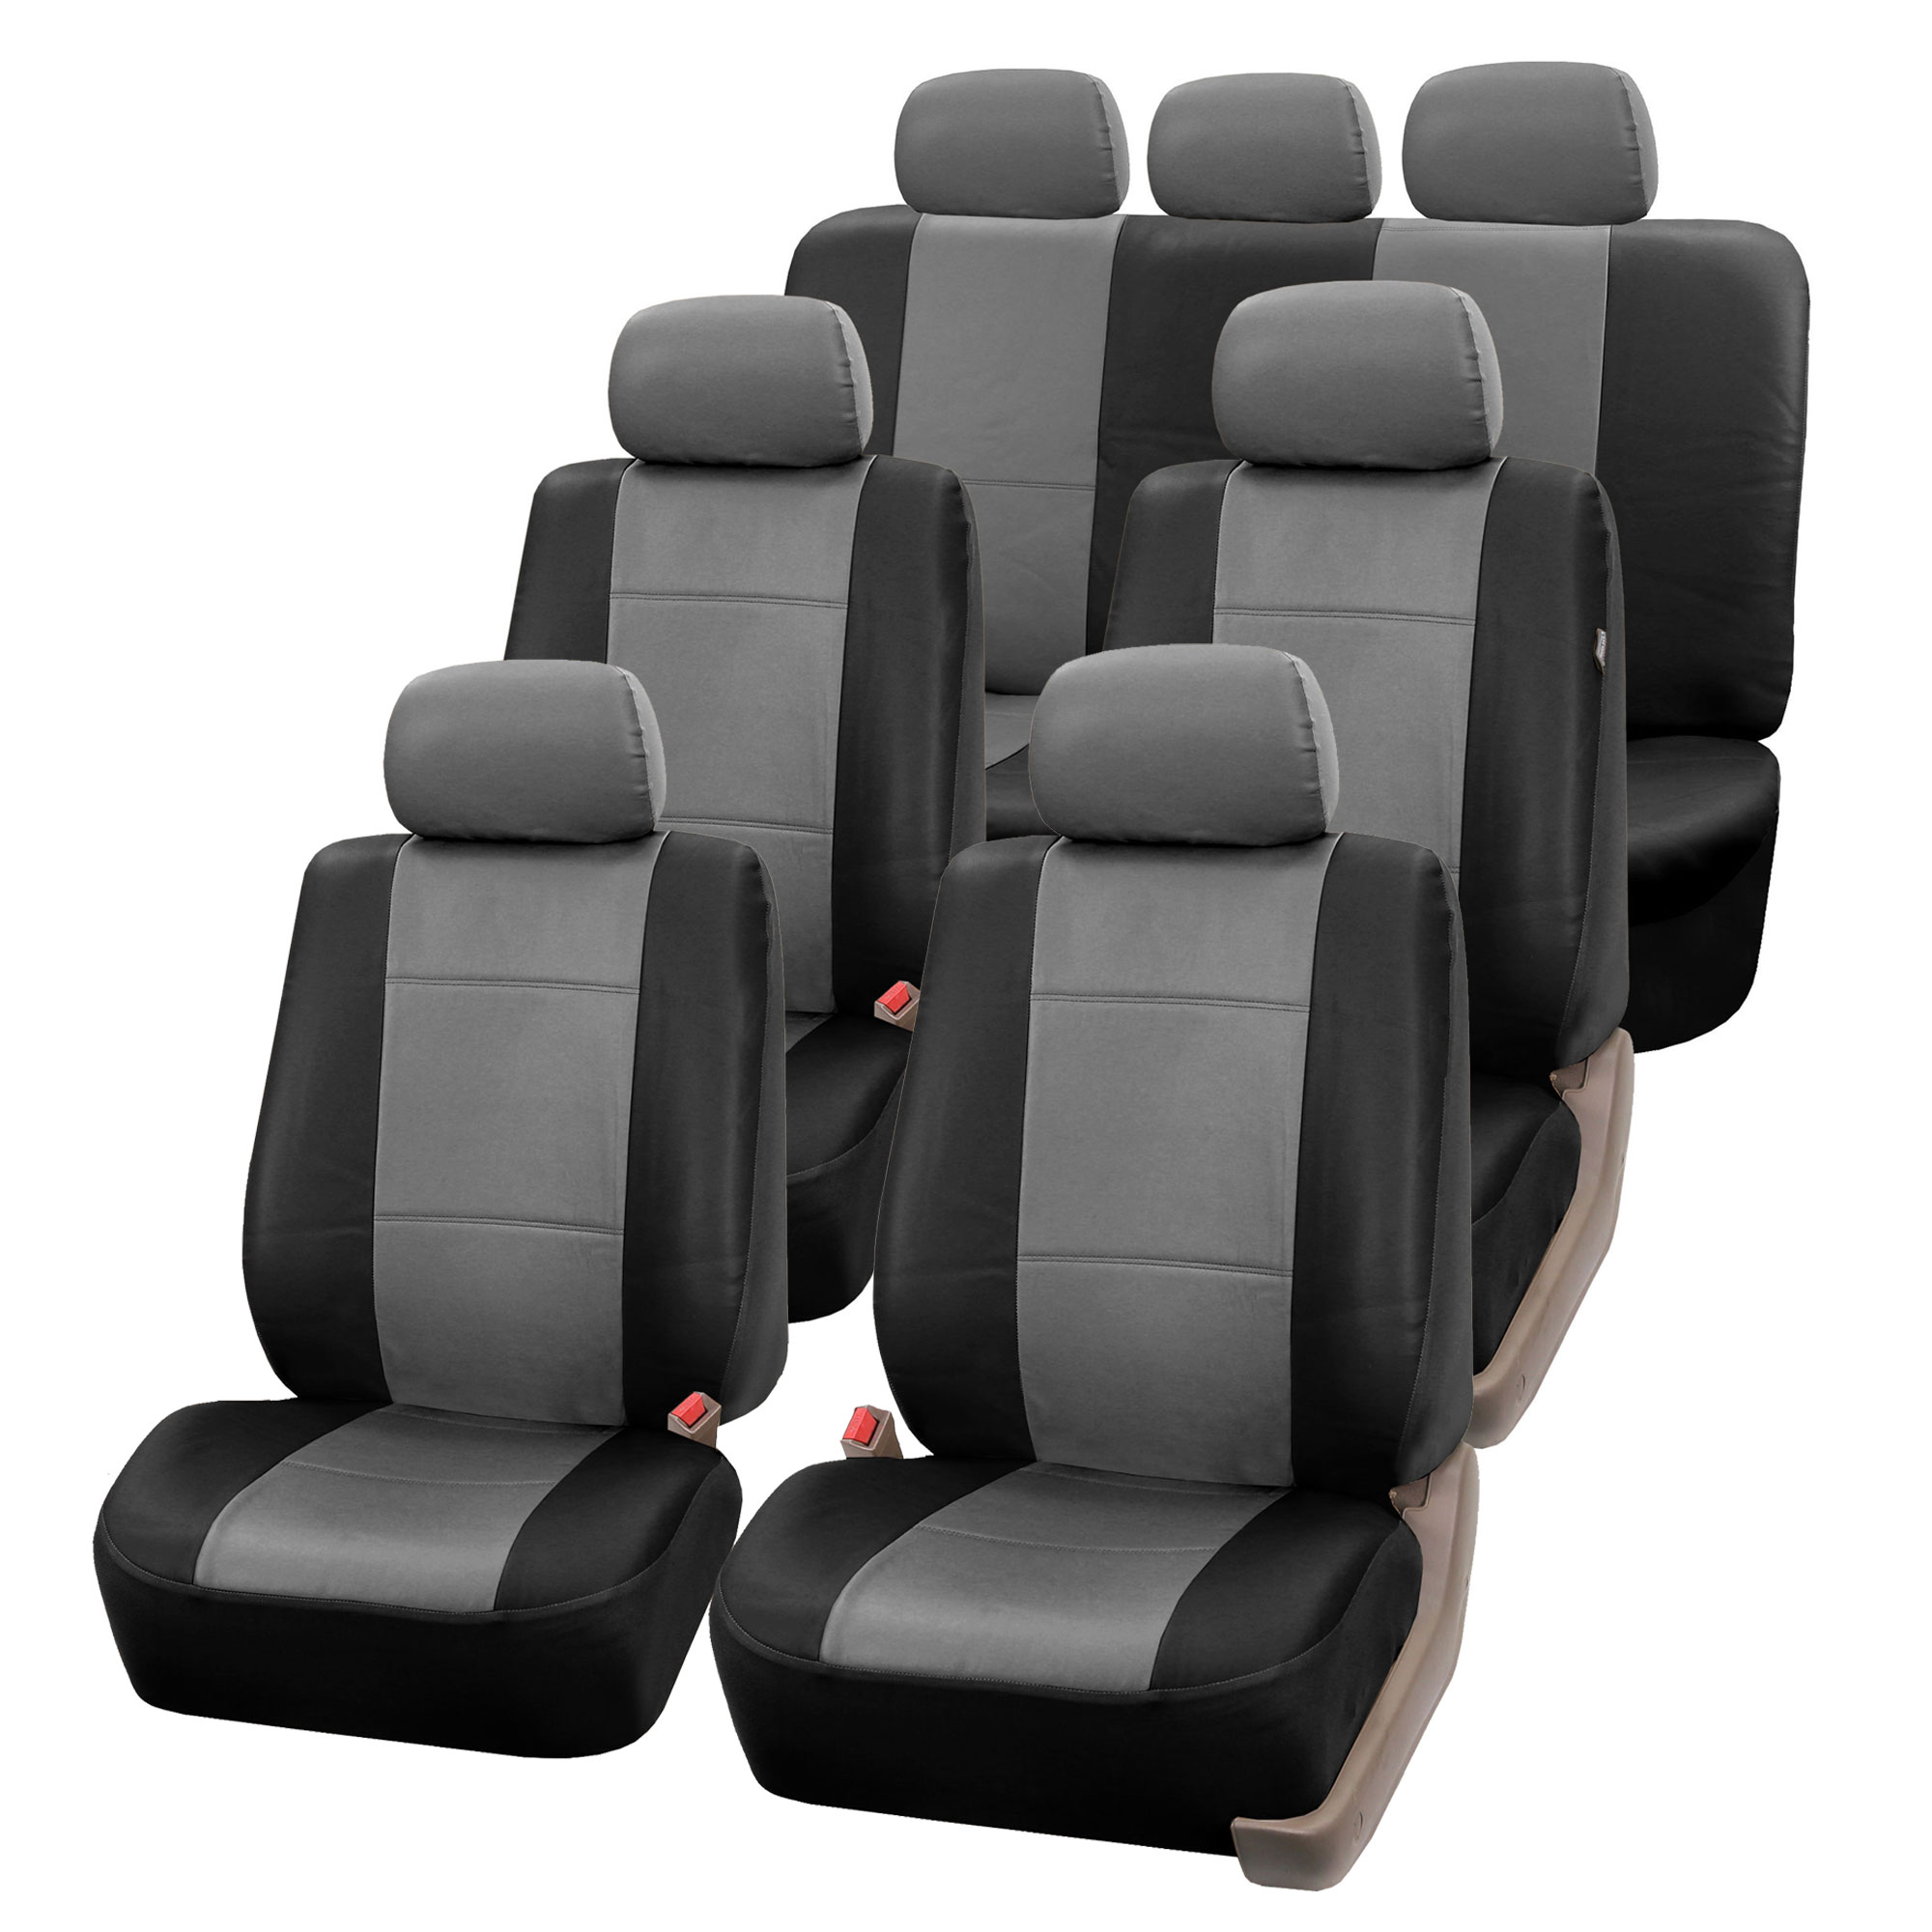 3 Row Faux Leather Car Seat Covers For Auto Suv Truck